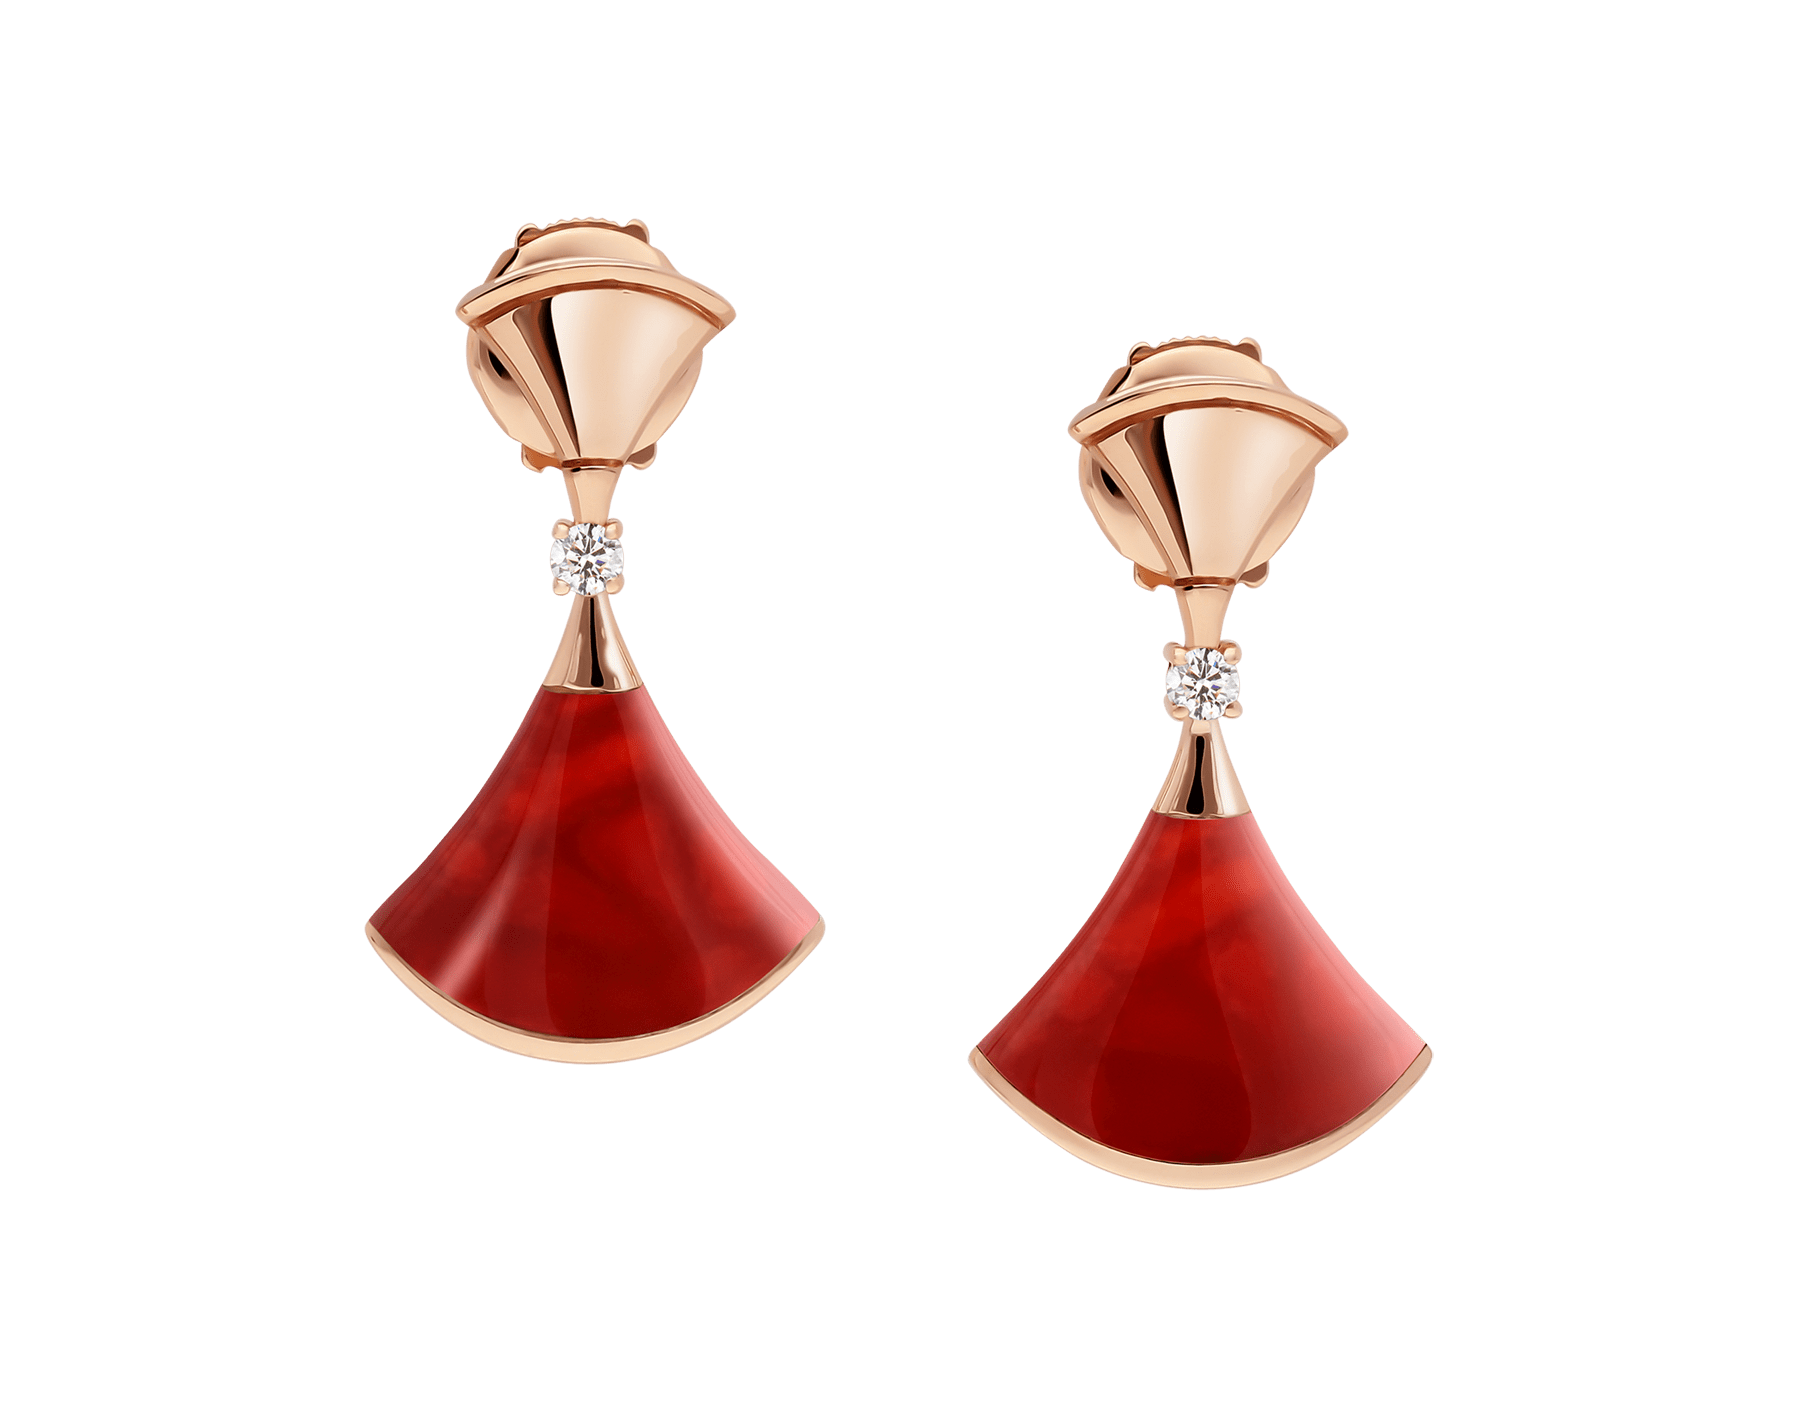 DIVAS' DREAM 18 kt rose gold earrings, set with carnelian elements and round brilliant-cut diamonds. 356749 image 1